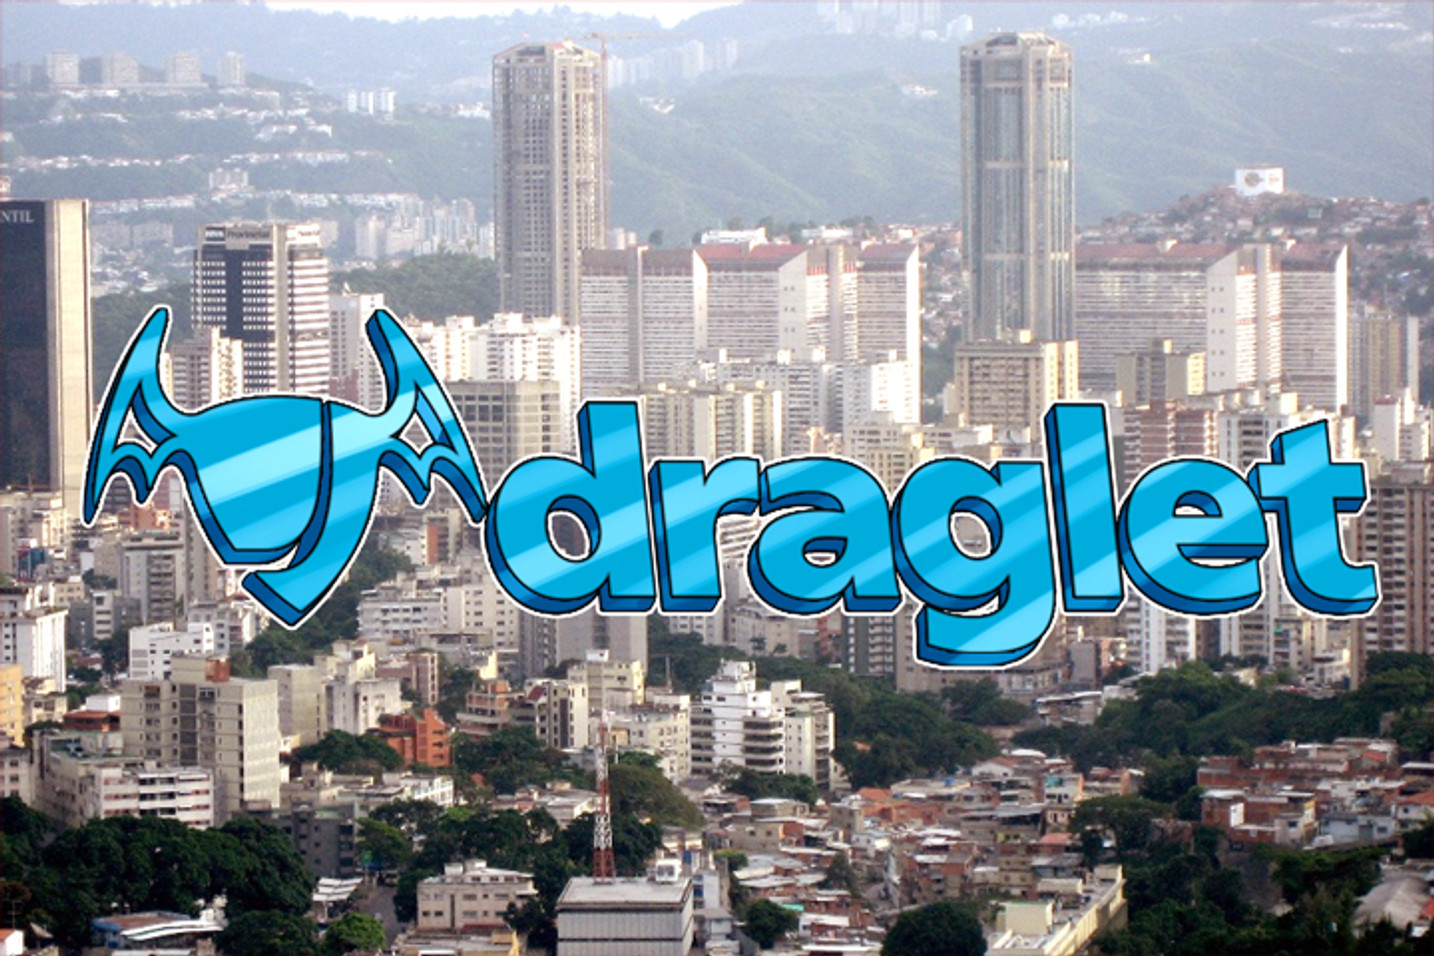 Venezuela Launches Its First Regulated Bitcoin Exchange Monkeycoin With Draglet